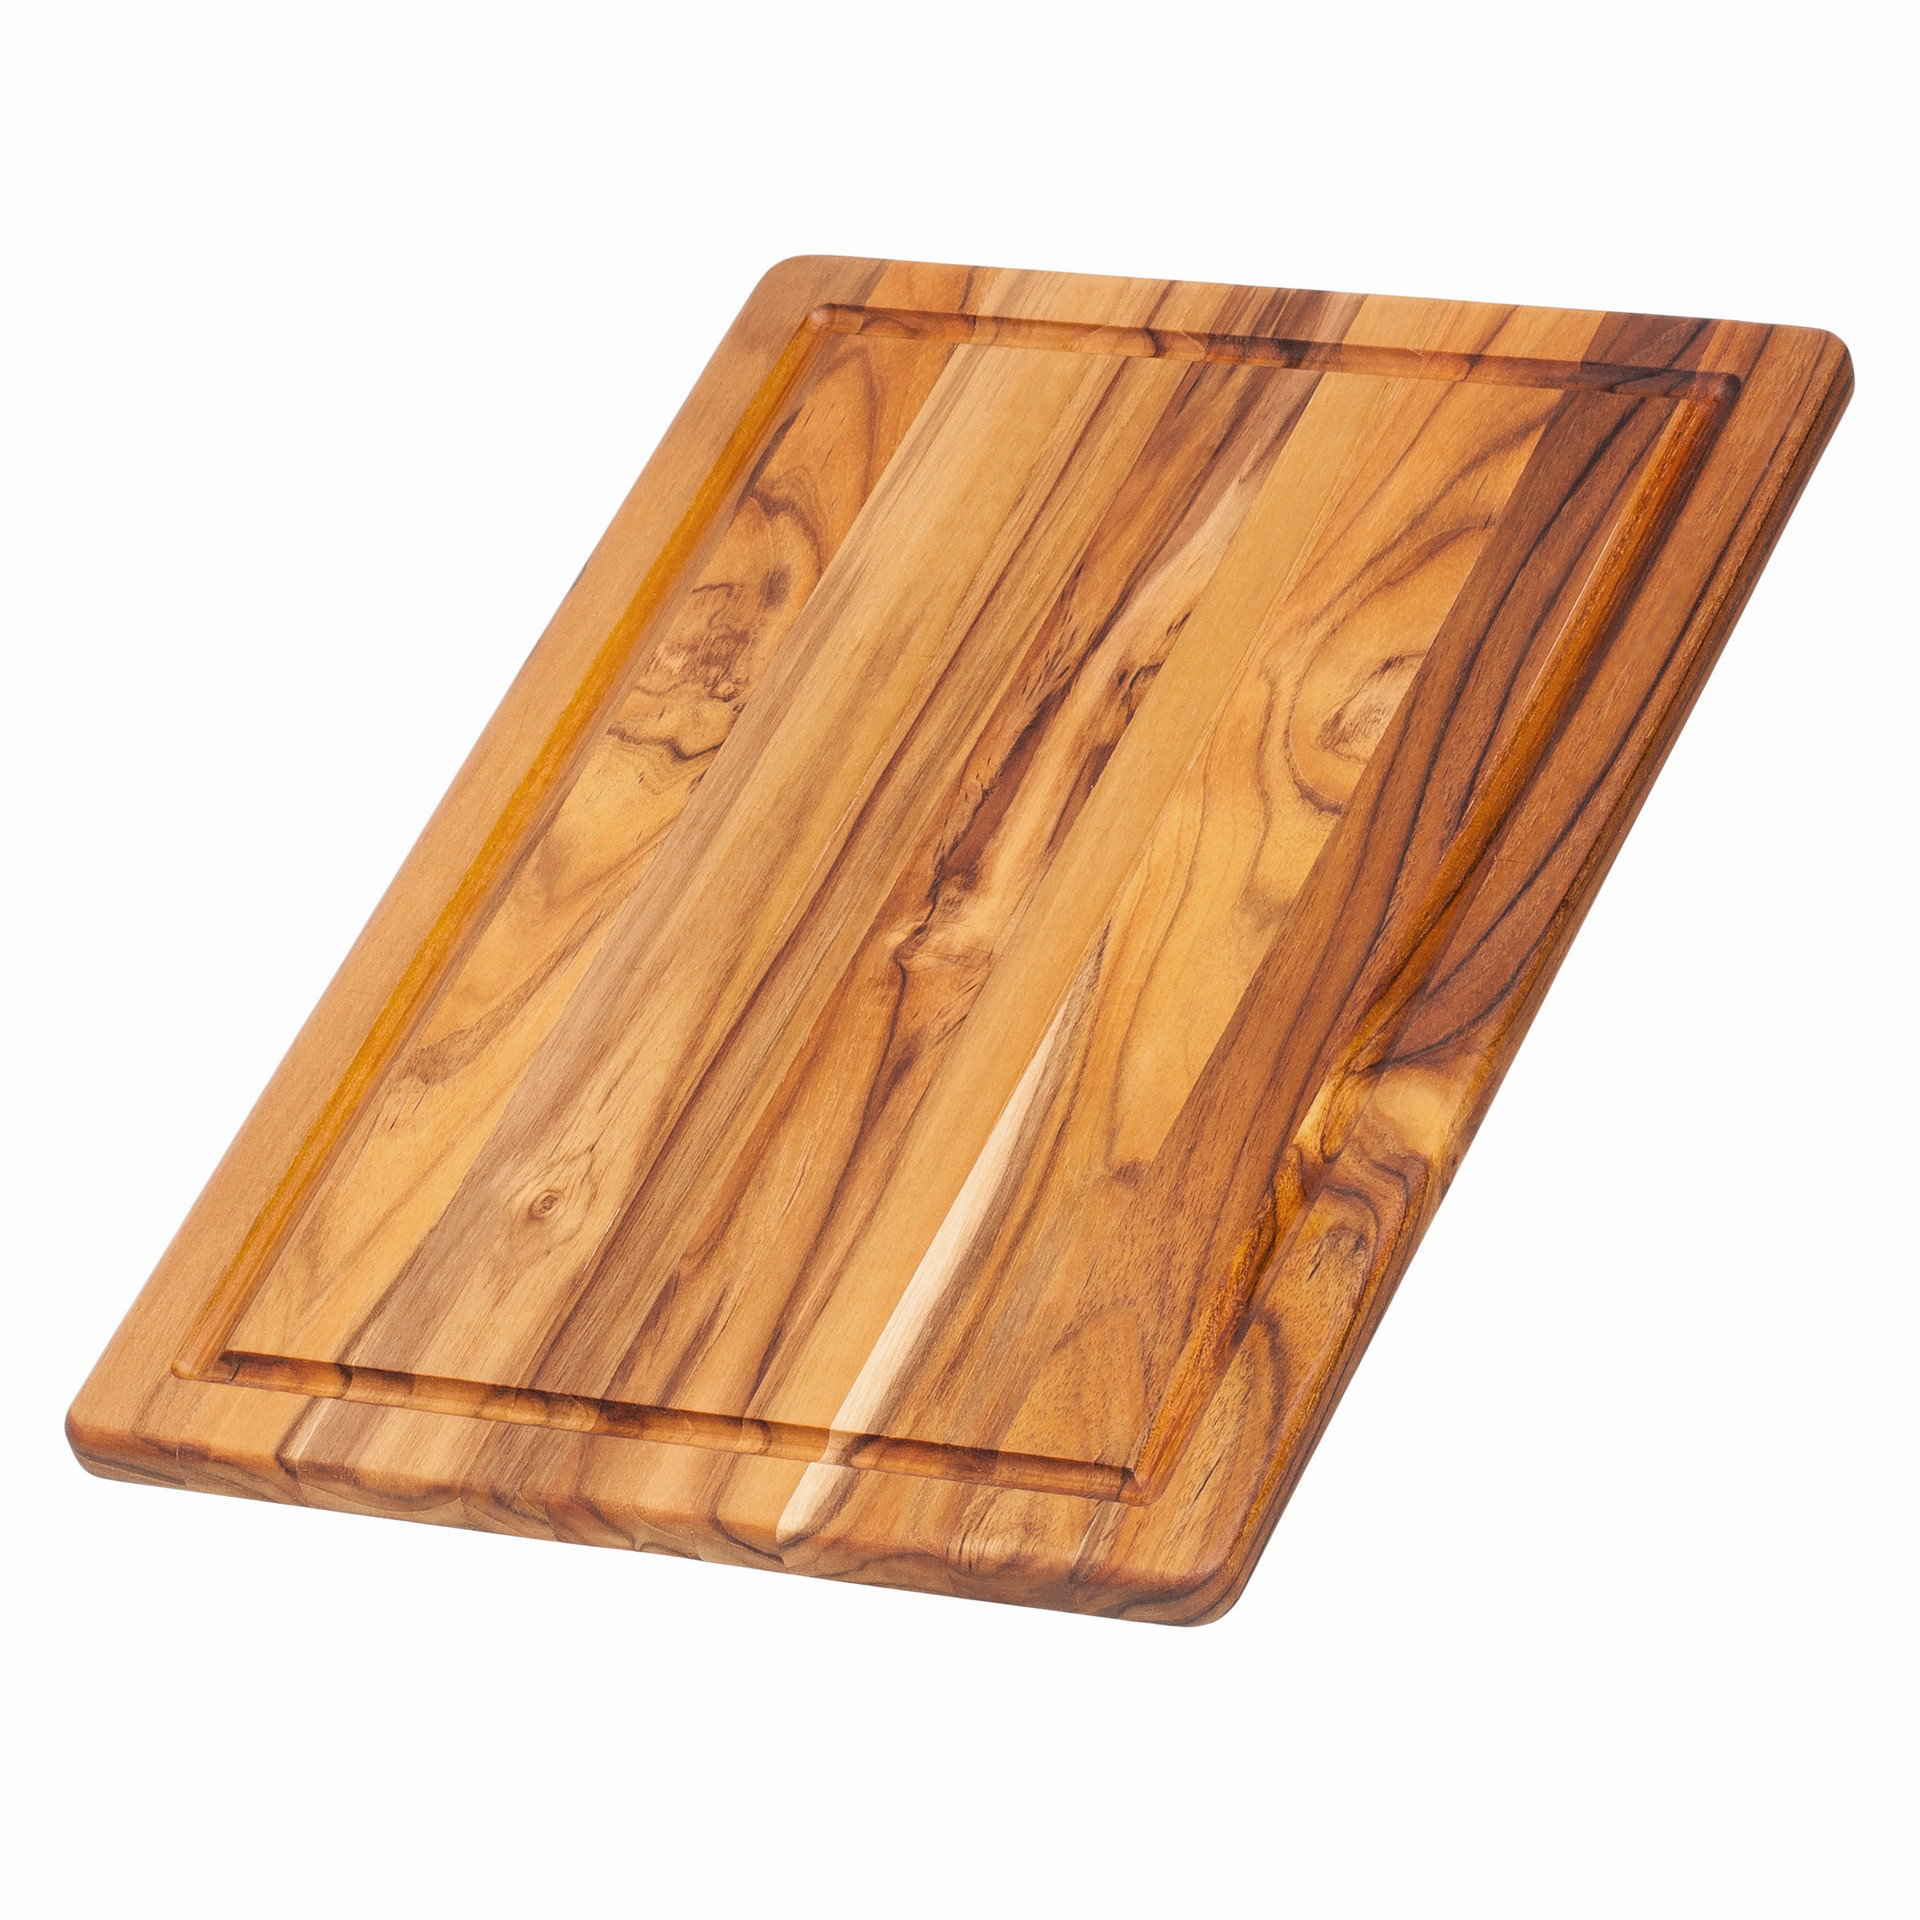 Teak Haus Edge Grain Essential Collection Boards 405 Cutting/Serving Board 40x28x1,4